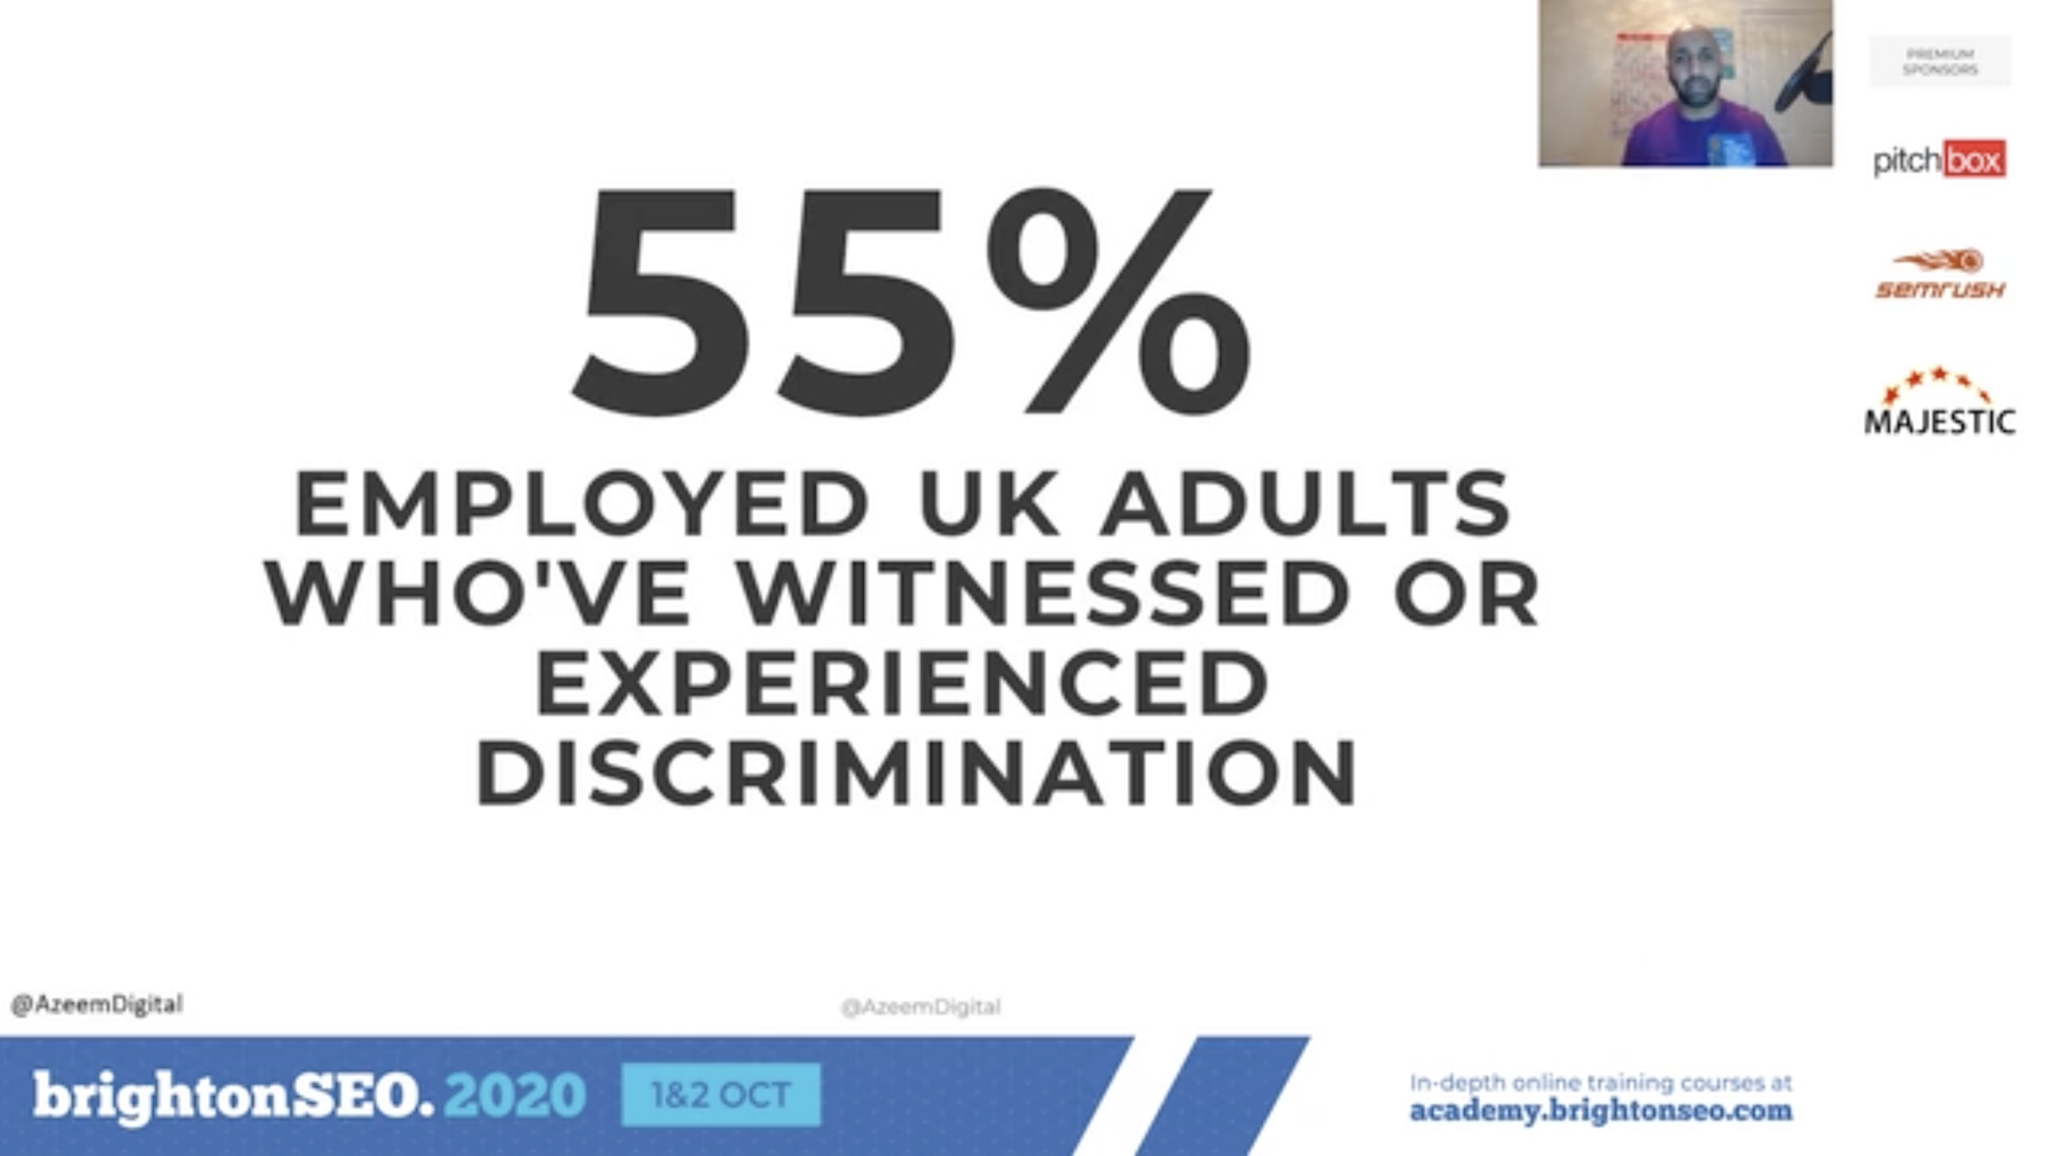 over half of people have experienced discrimination in the workplace